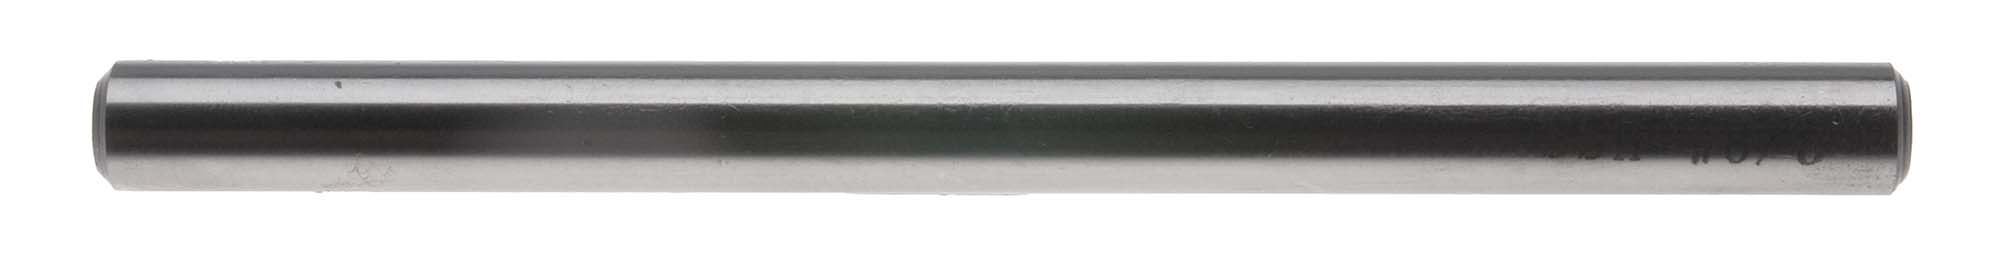 "1/4"" Jobber Length Drill Blank - High Speed Steel"